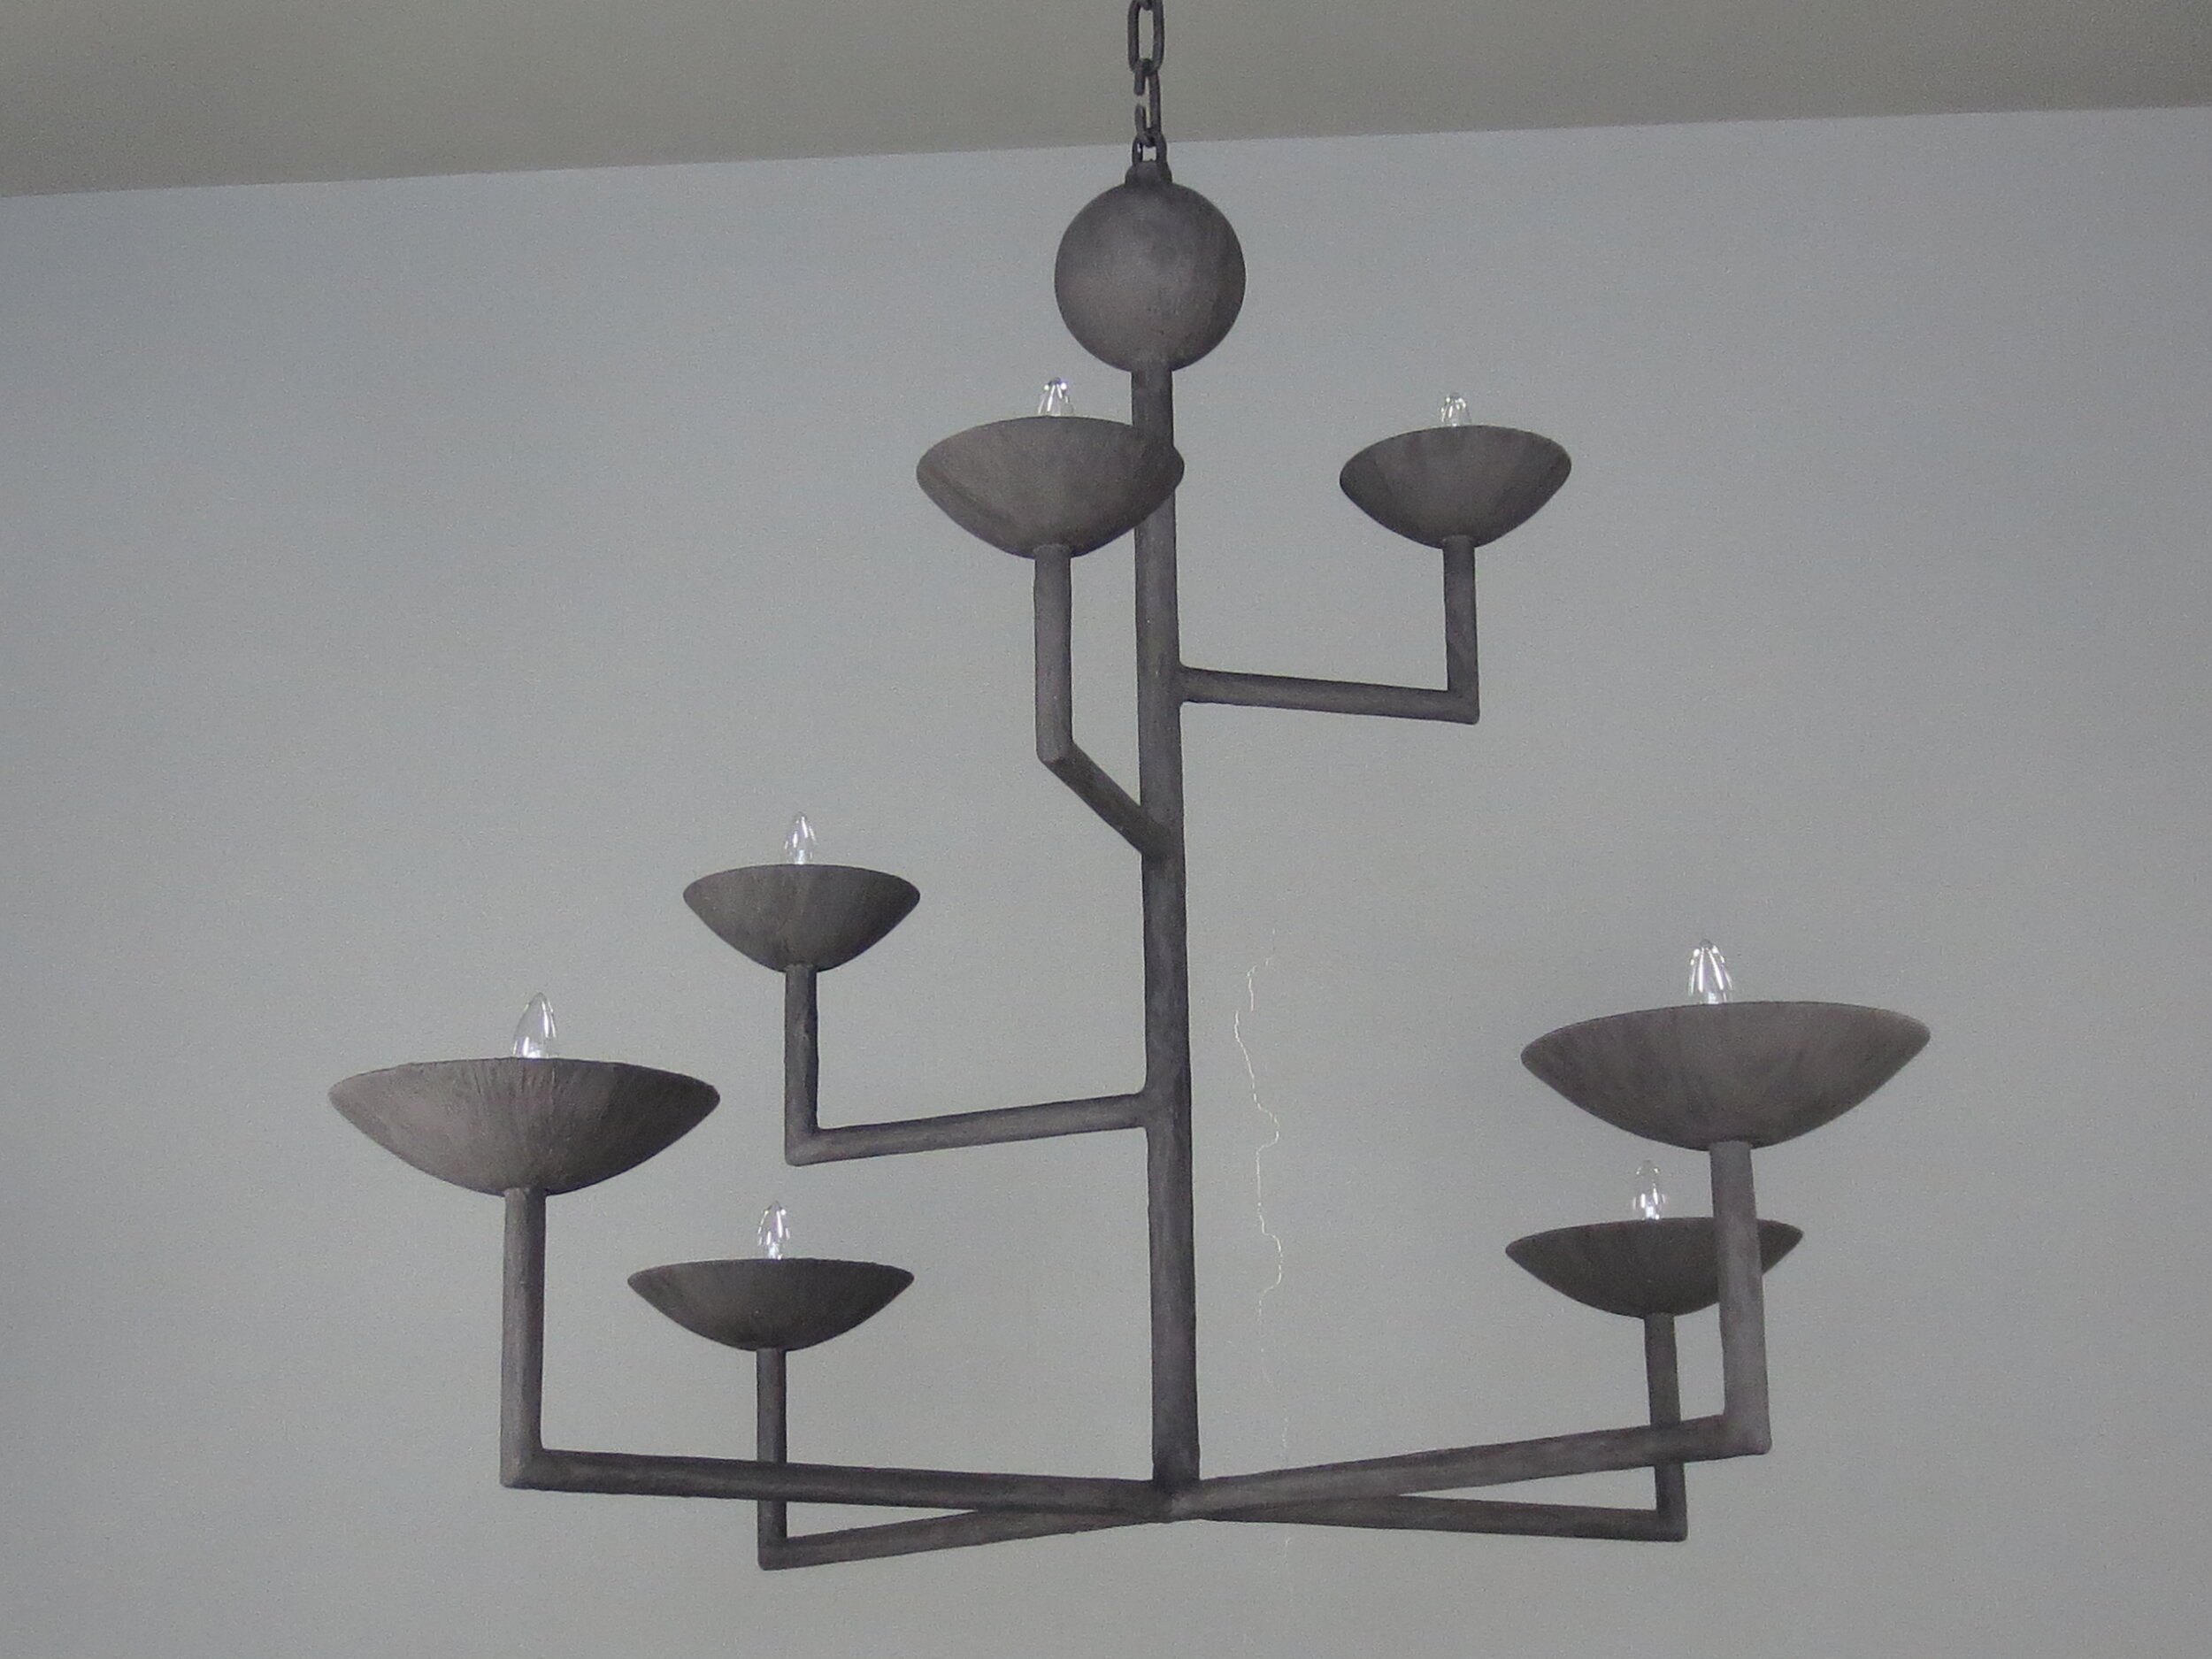 7 Cup Rectangular Chandelier with Black Finish